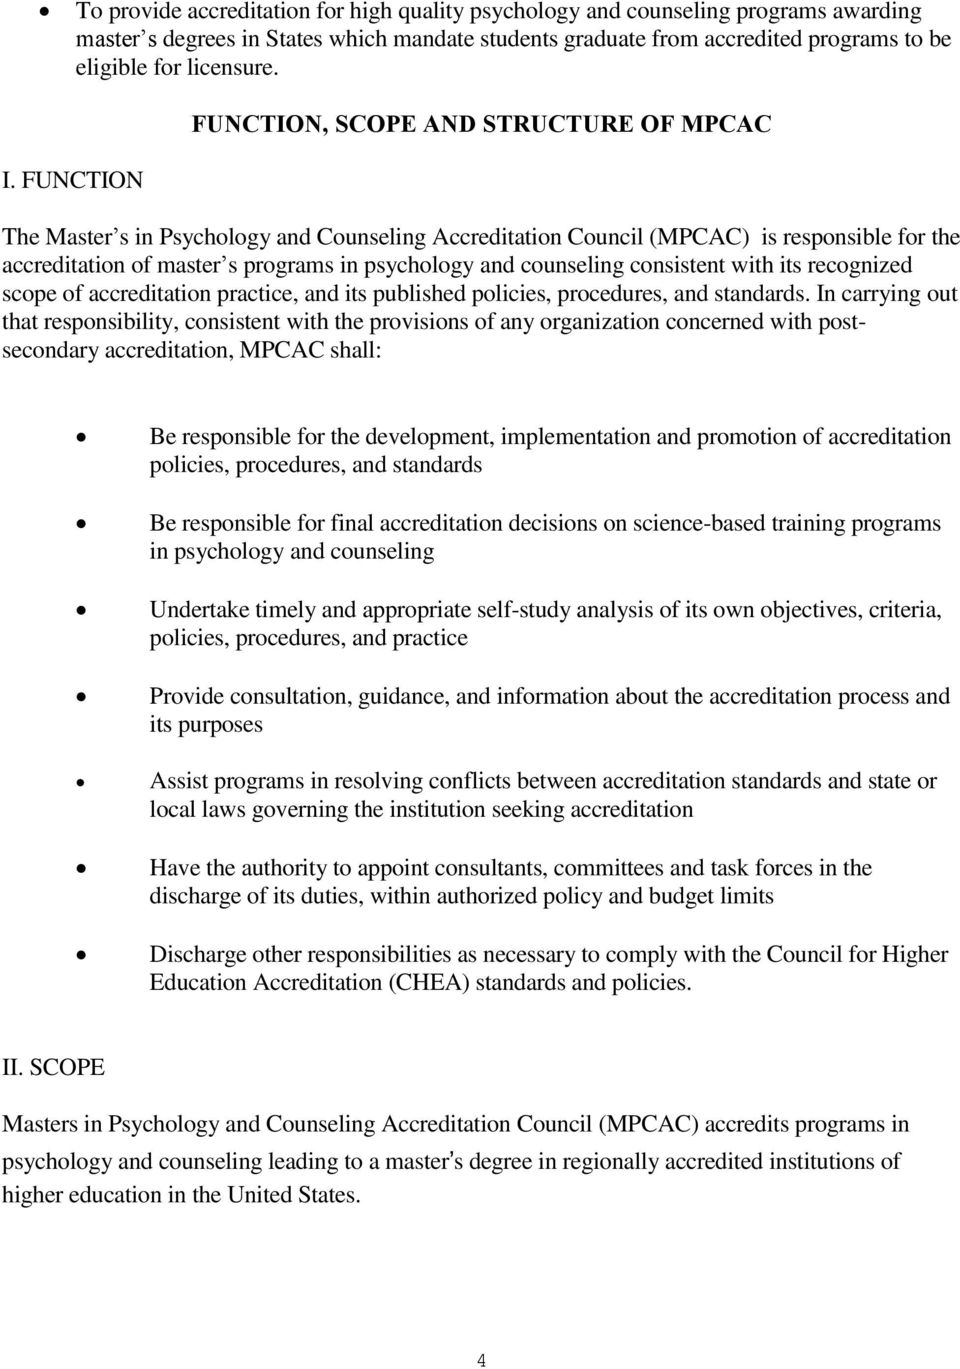 FUNCTION The Master s in Psychology and Counseling Accreditation Council (MPCAC) is responsible for the accreditation of master s programs in psychology and counseling consistent with its recognized